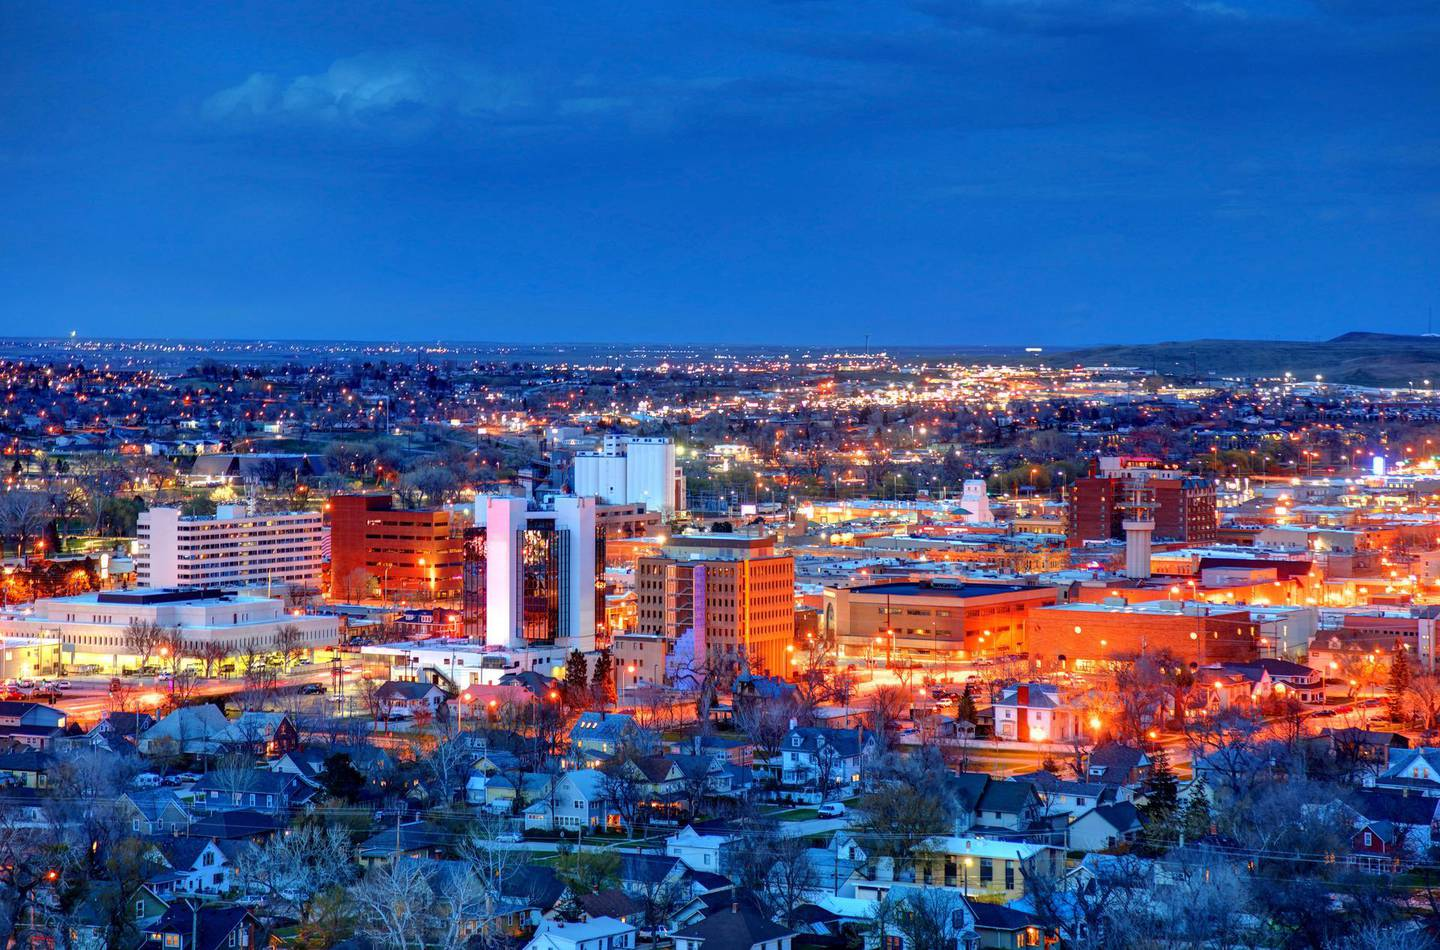 Rapid City is the second most populous city in South Dakota and the county seat of Pennington County. Getty Images